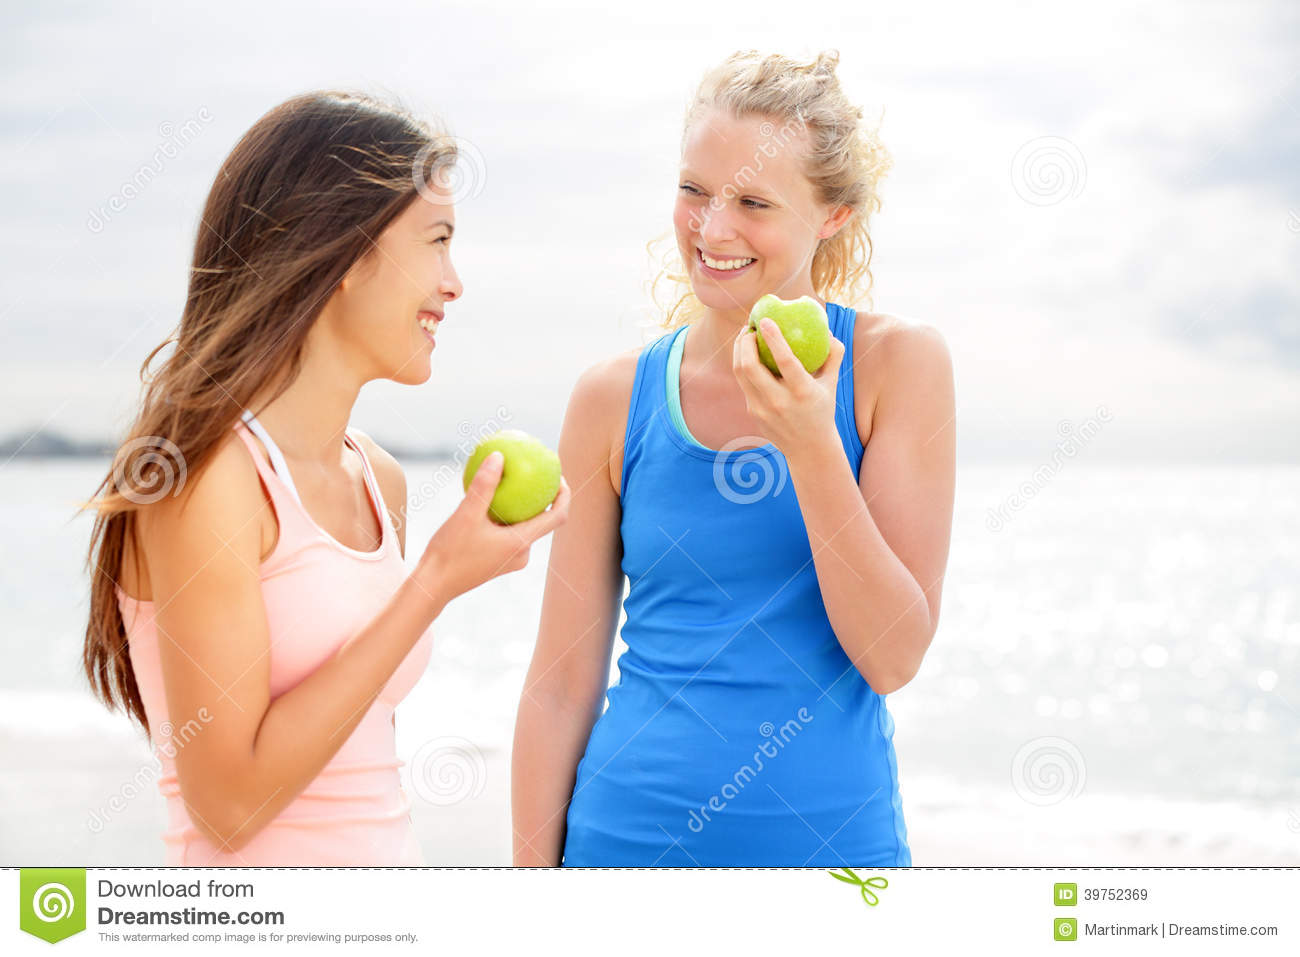 Healthy lifestyle women eating apple after running